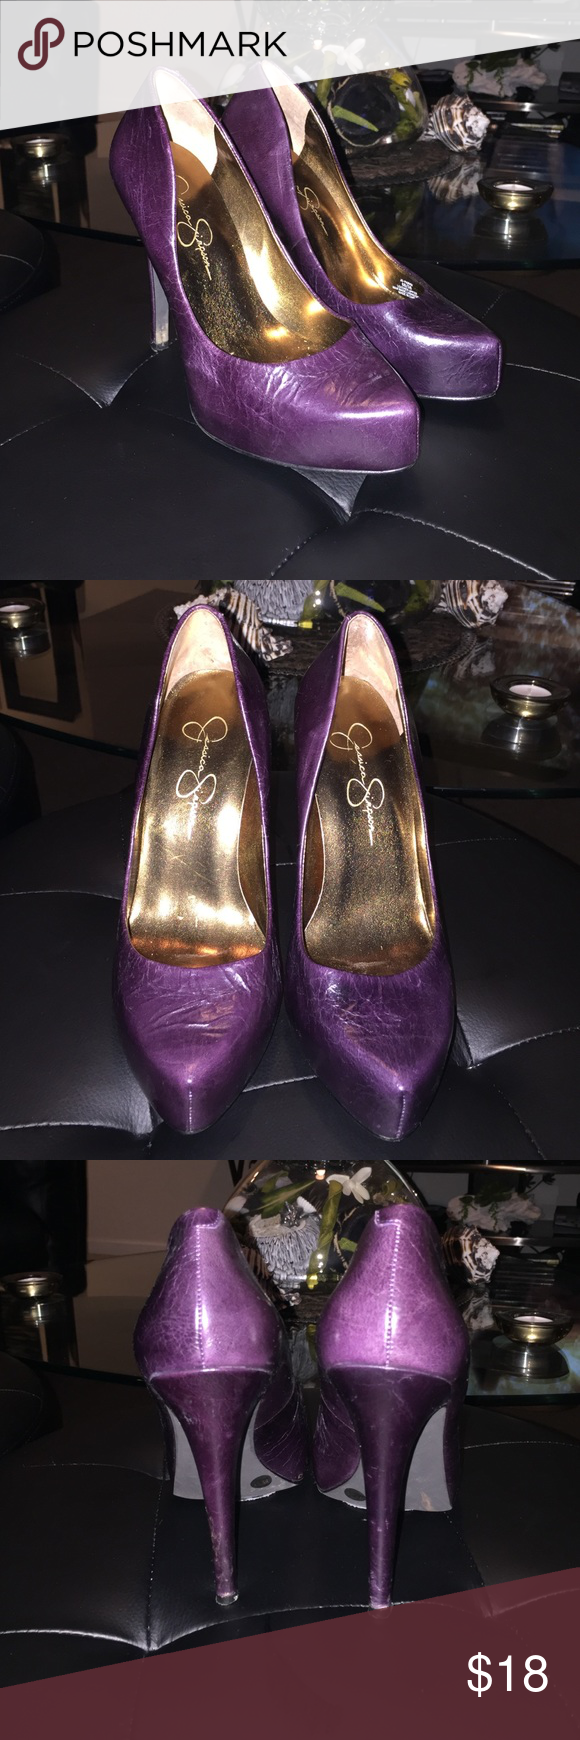 Jessica Simpson eggplant purple pumps sz 6 Jessica Simpson eggplant purple heel pumps sz 6. Excellent condition!! beautiful color! Heel height 4.5 inches Jessica Simpson Shoes Heels